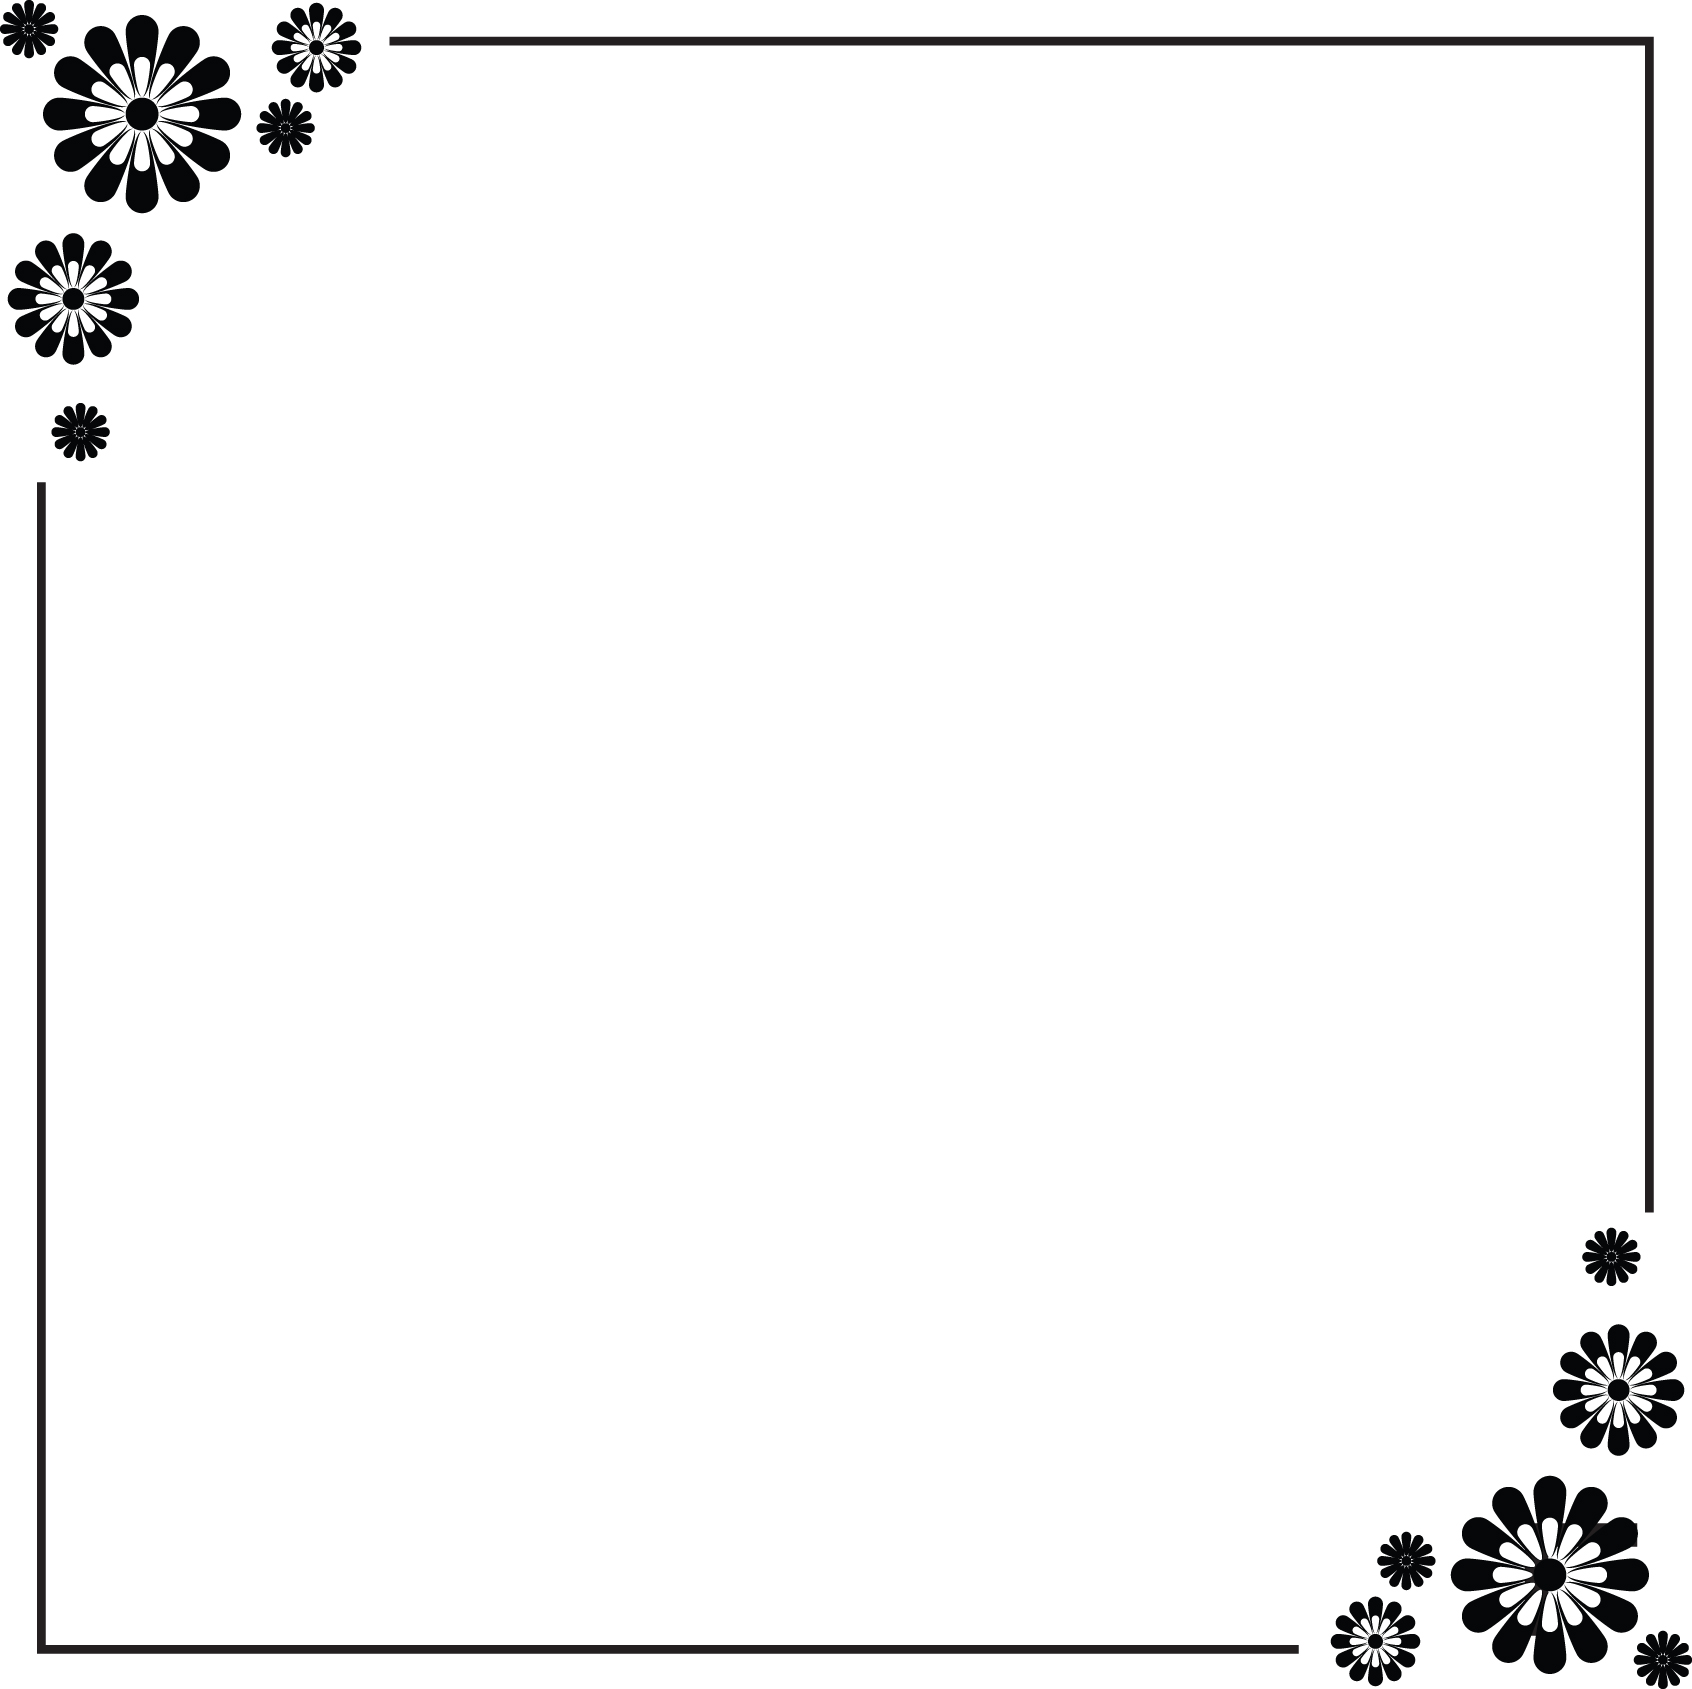 16 Project Flower For Border Design Images - Cute Corner ...